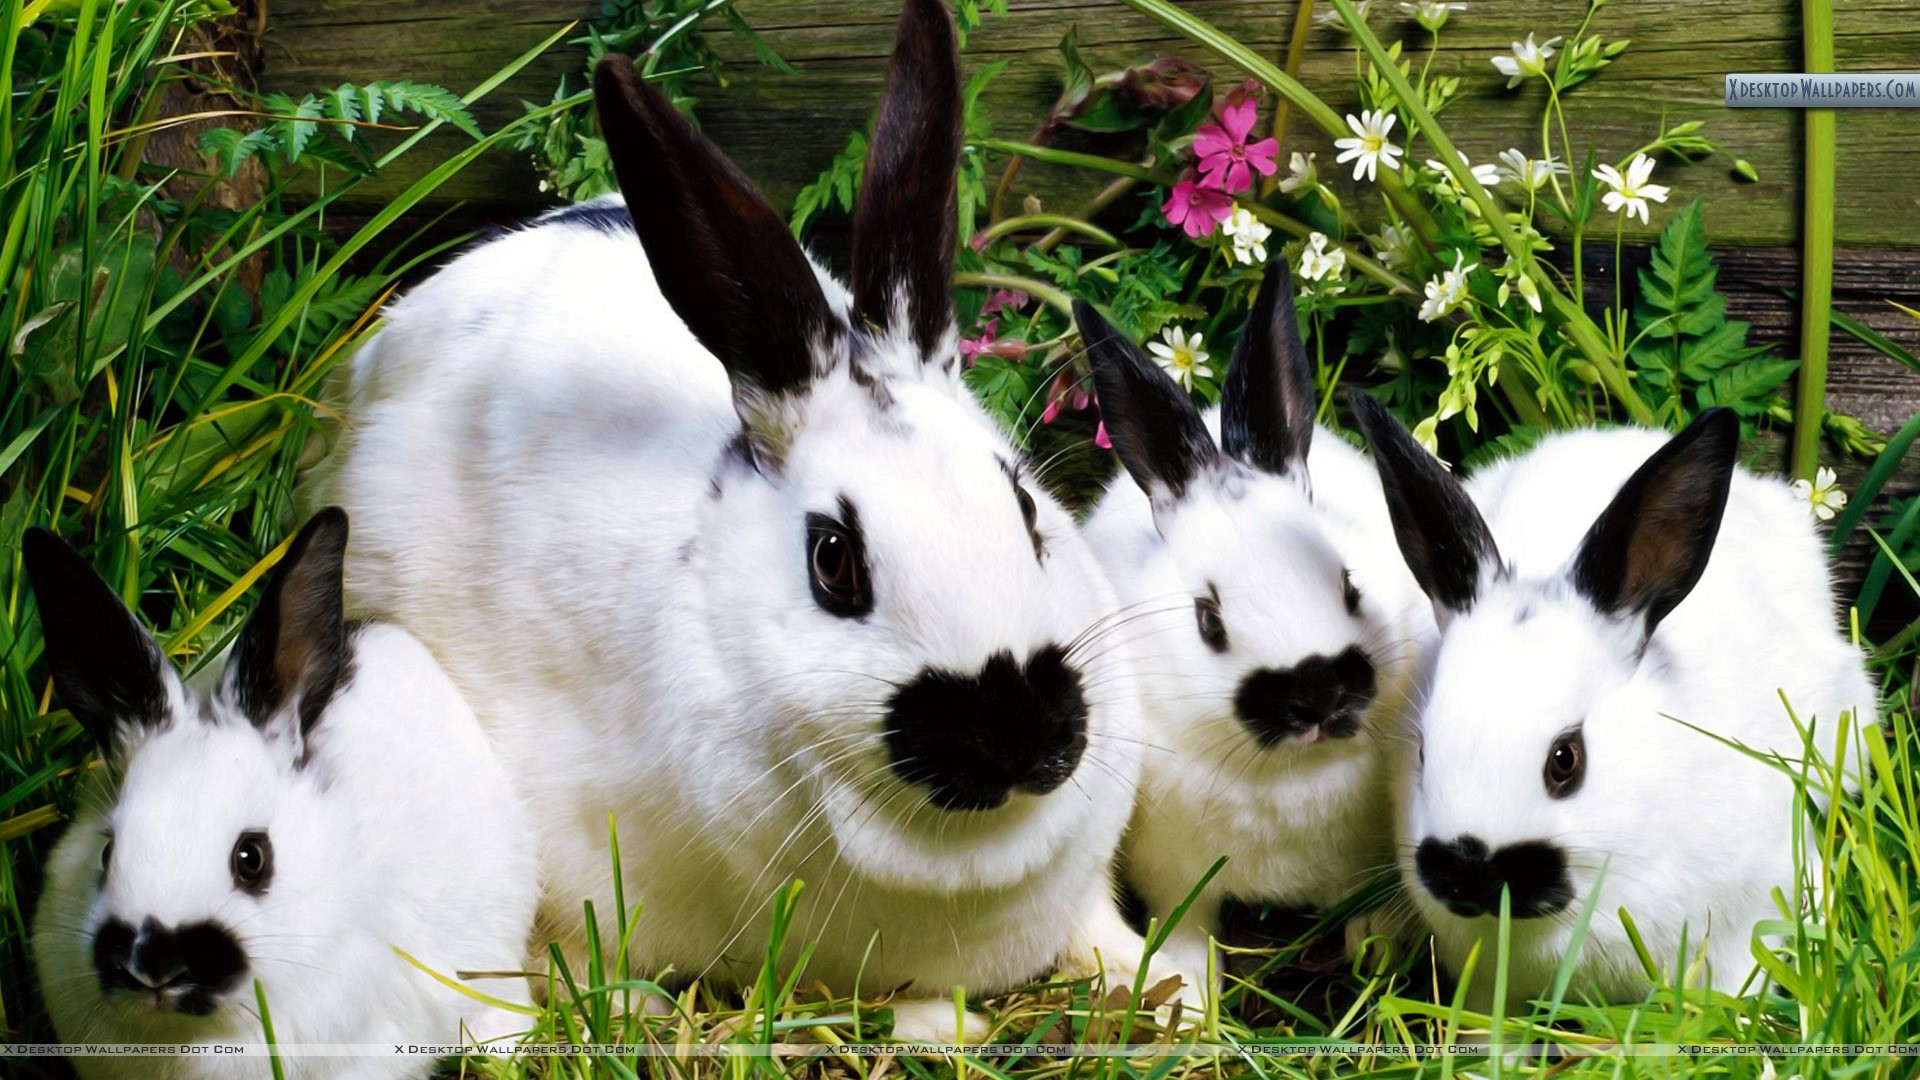 Bunch o bunnies wallpaper you are viewing wallpaper voltagebd Image collections